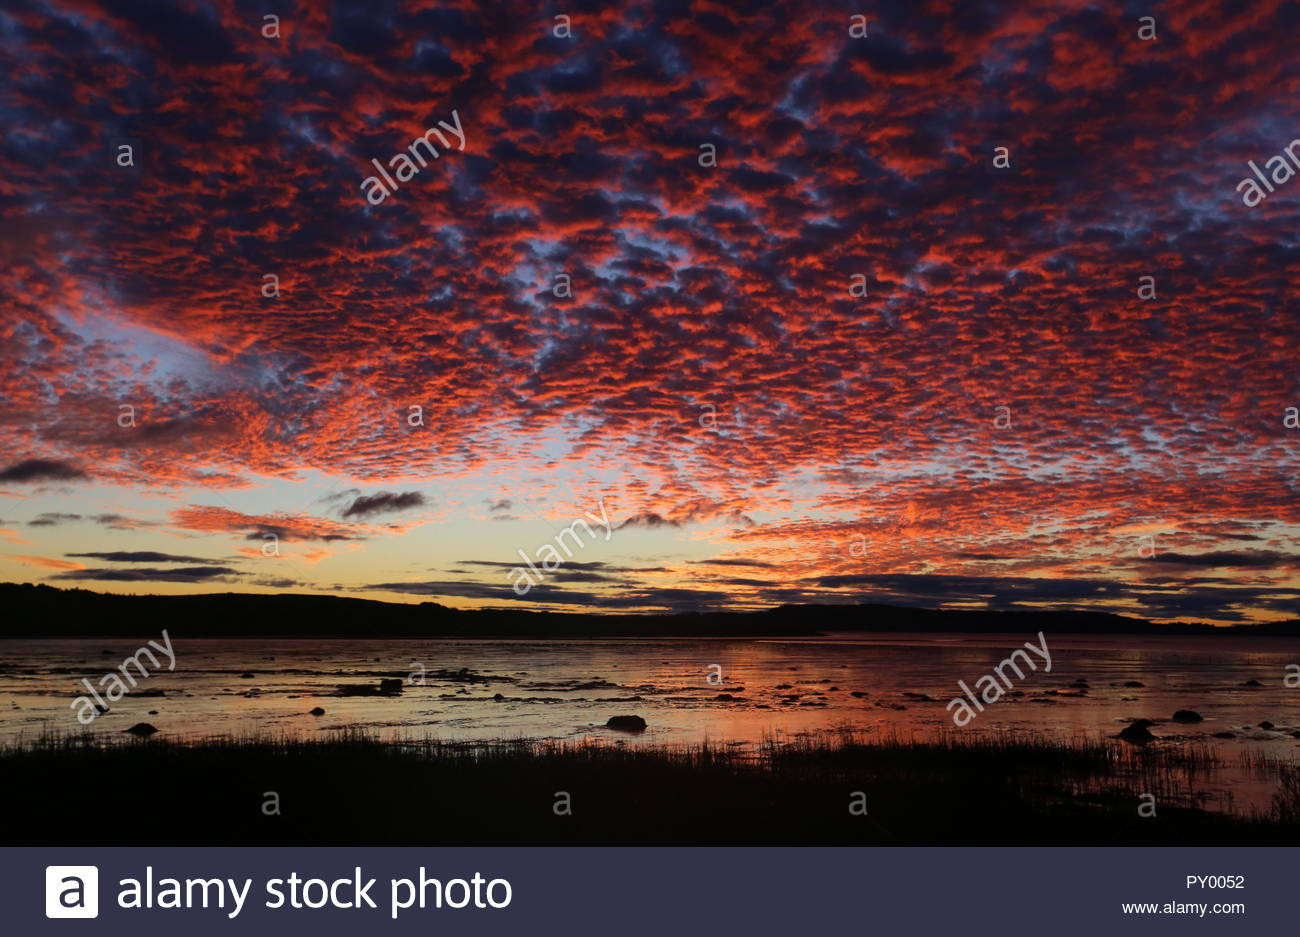 Dundee, UK. 25th October 2018. Sunrise over Tay Estuary, as dramatic start to another dry day in Tayside. Credit: Stephen Finn/Alamy Live News Stock Photo